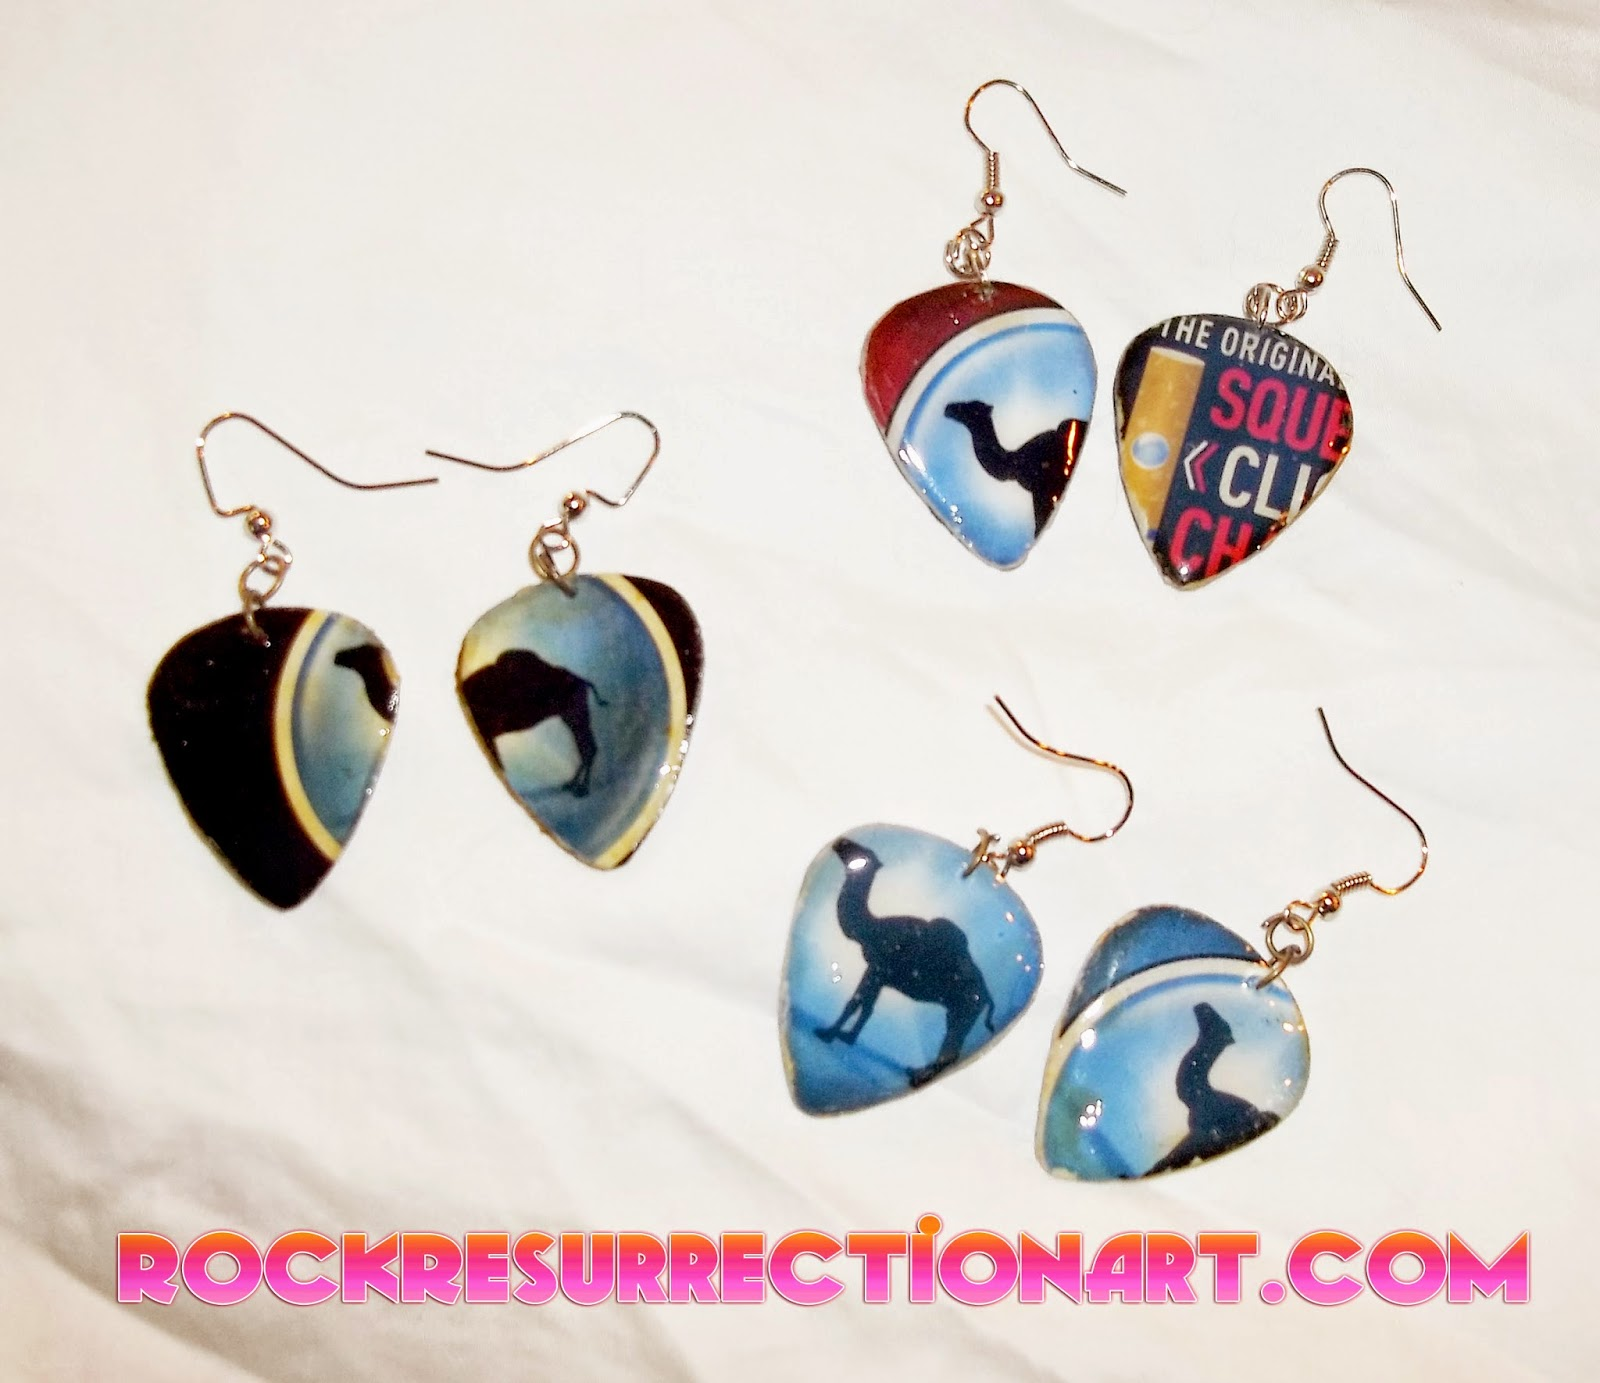 Cigarette Packaging Guitar Pick Earrings